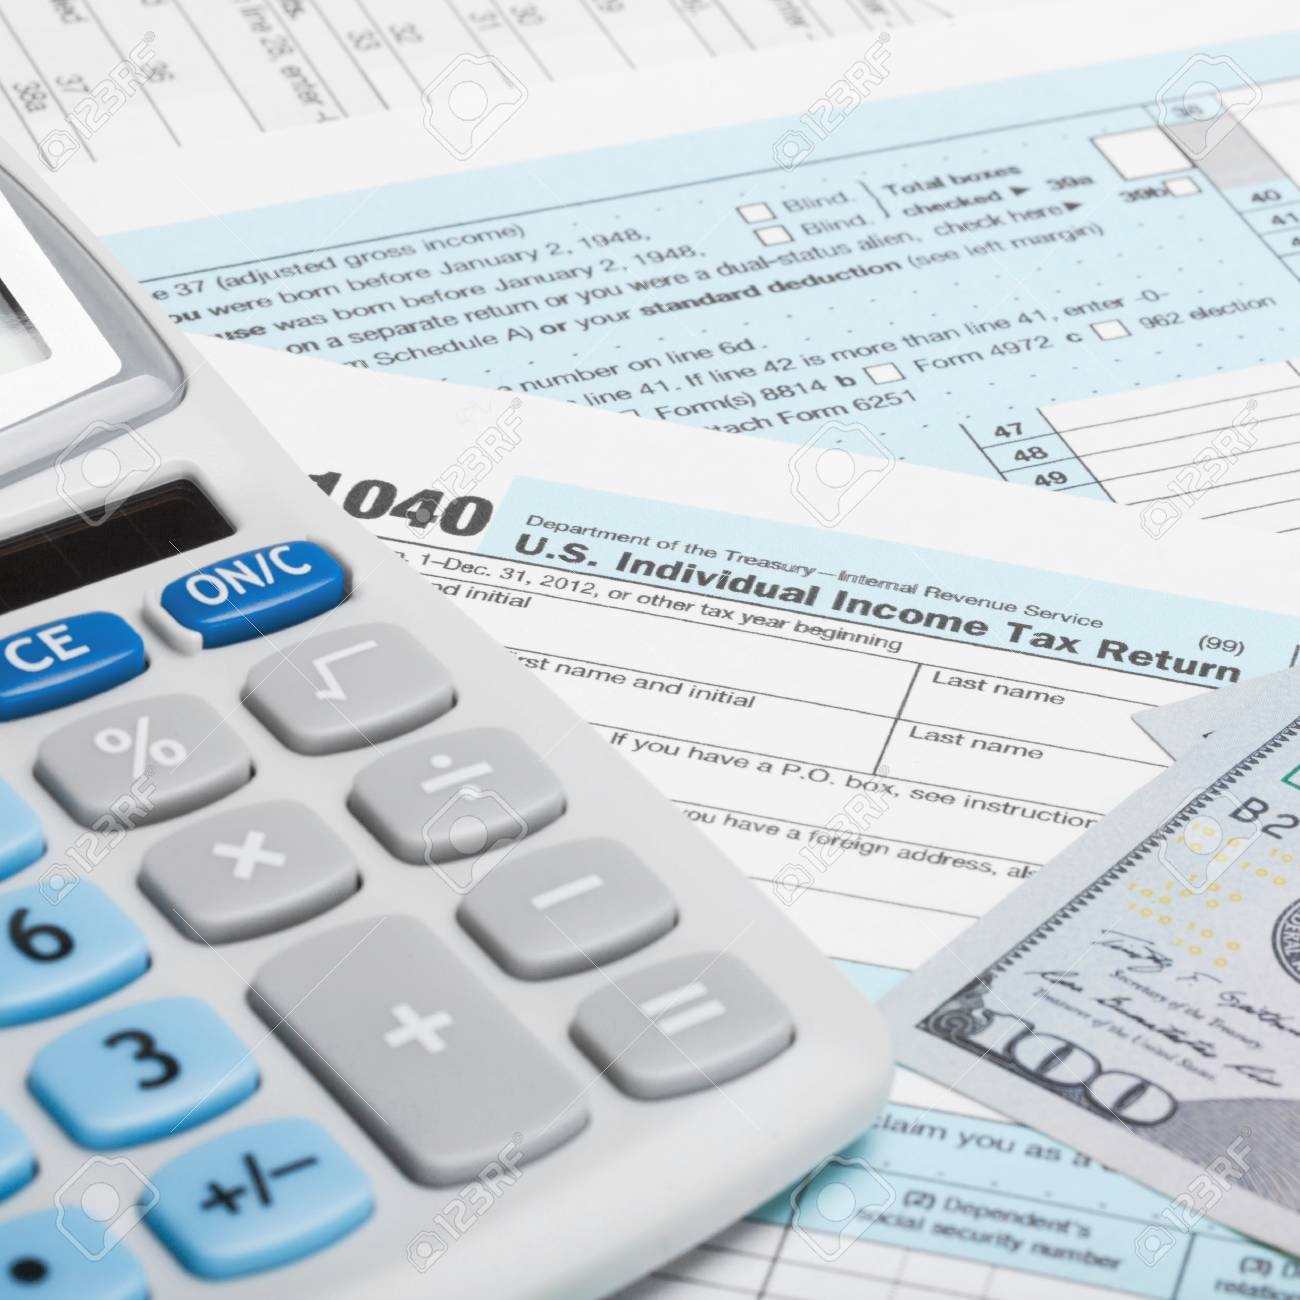 form 1040 calculator  US Tax Form 12 with calculator and US dollars